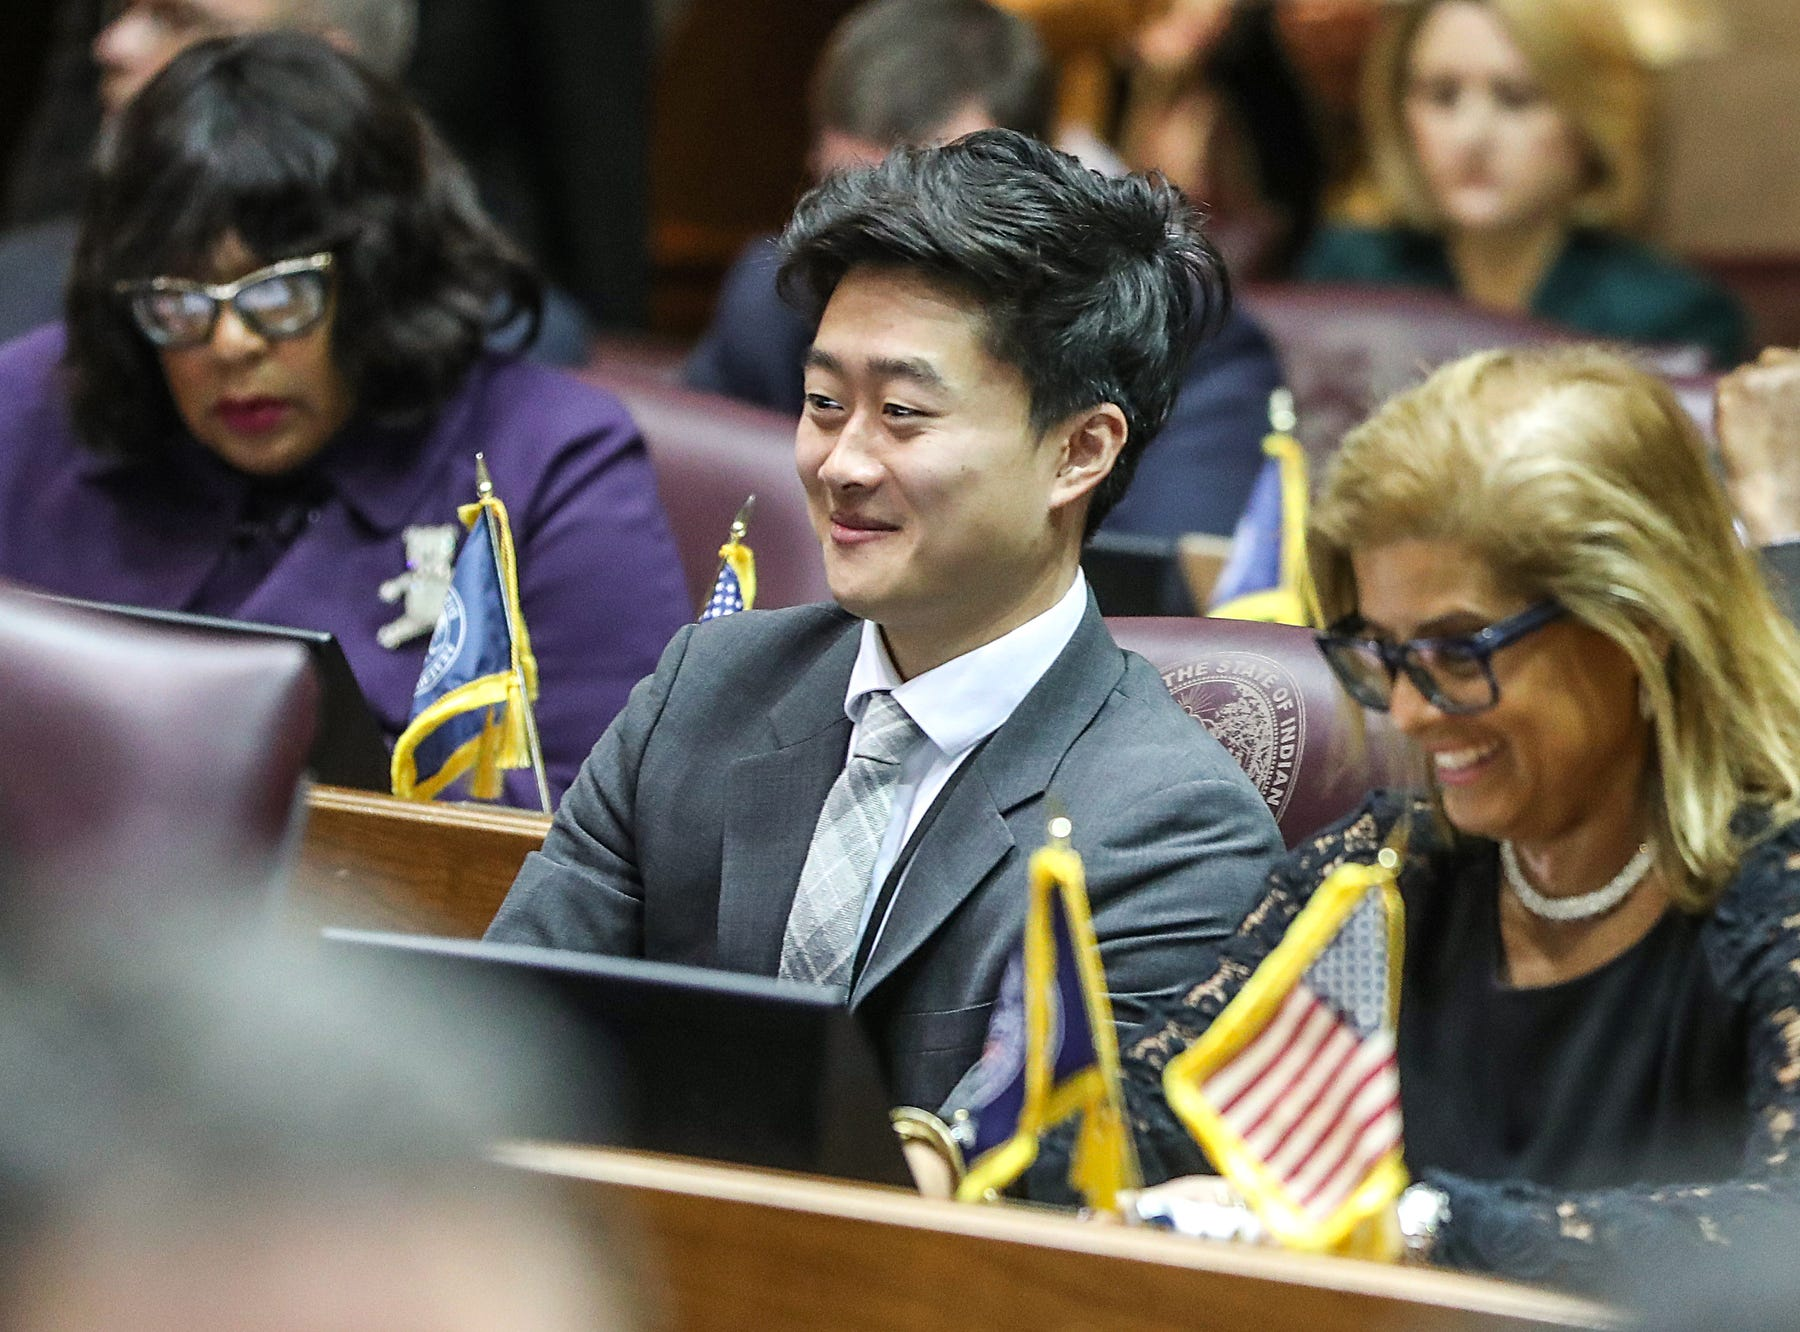 Center, Rep. Chris Chyung listens to introductions on the starting day of legislative session at the Indiana Statehouse, Indianapolis, Thursday, Jan. 3, 2019.